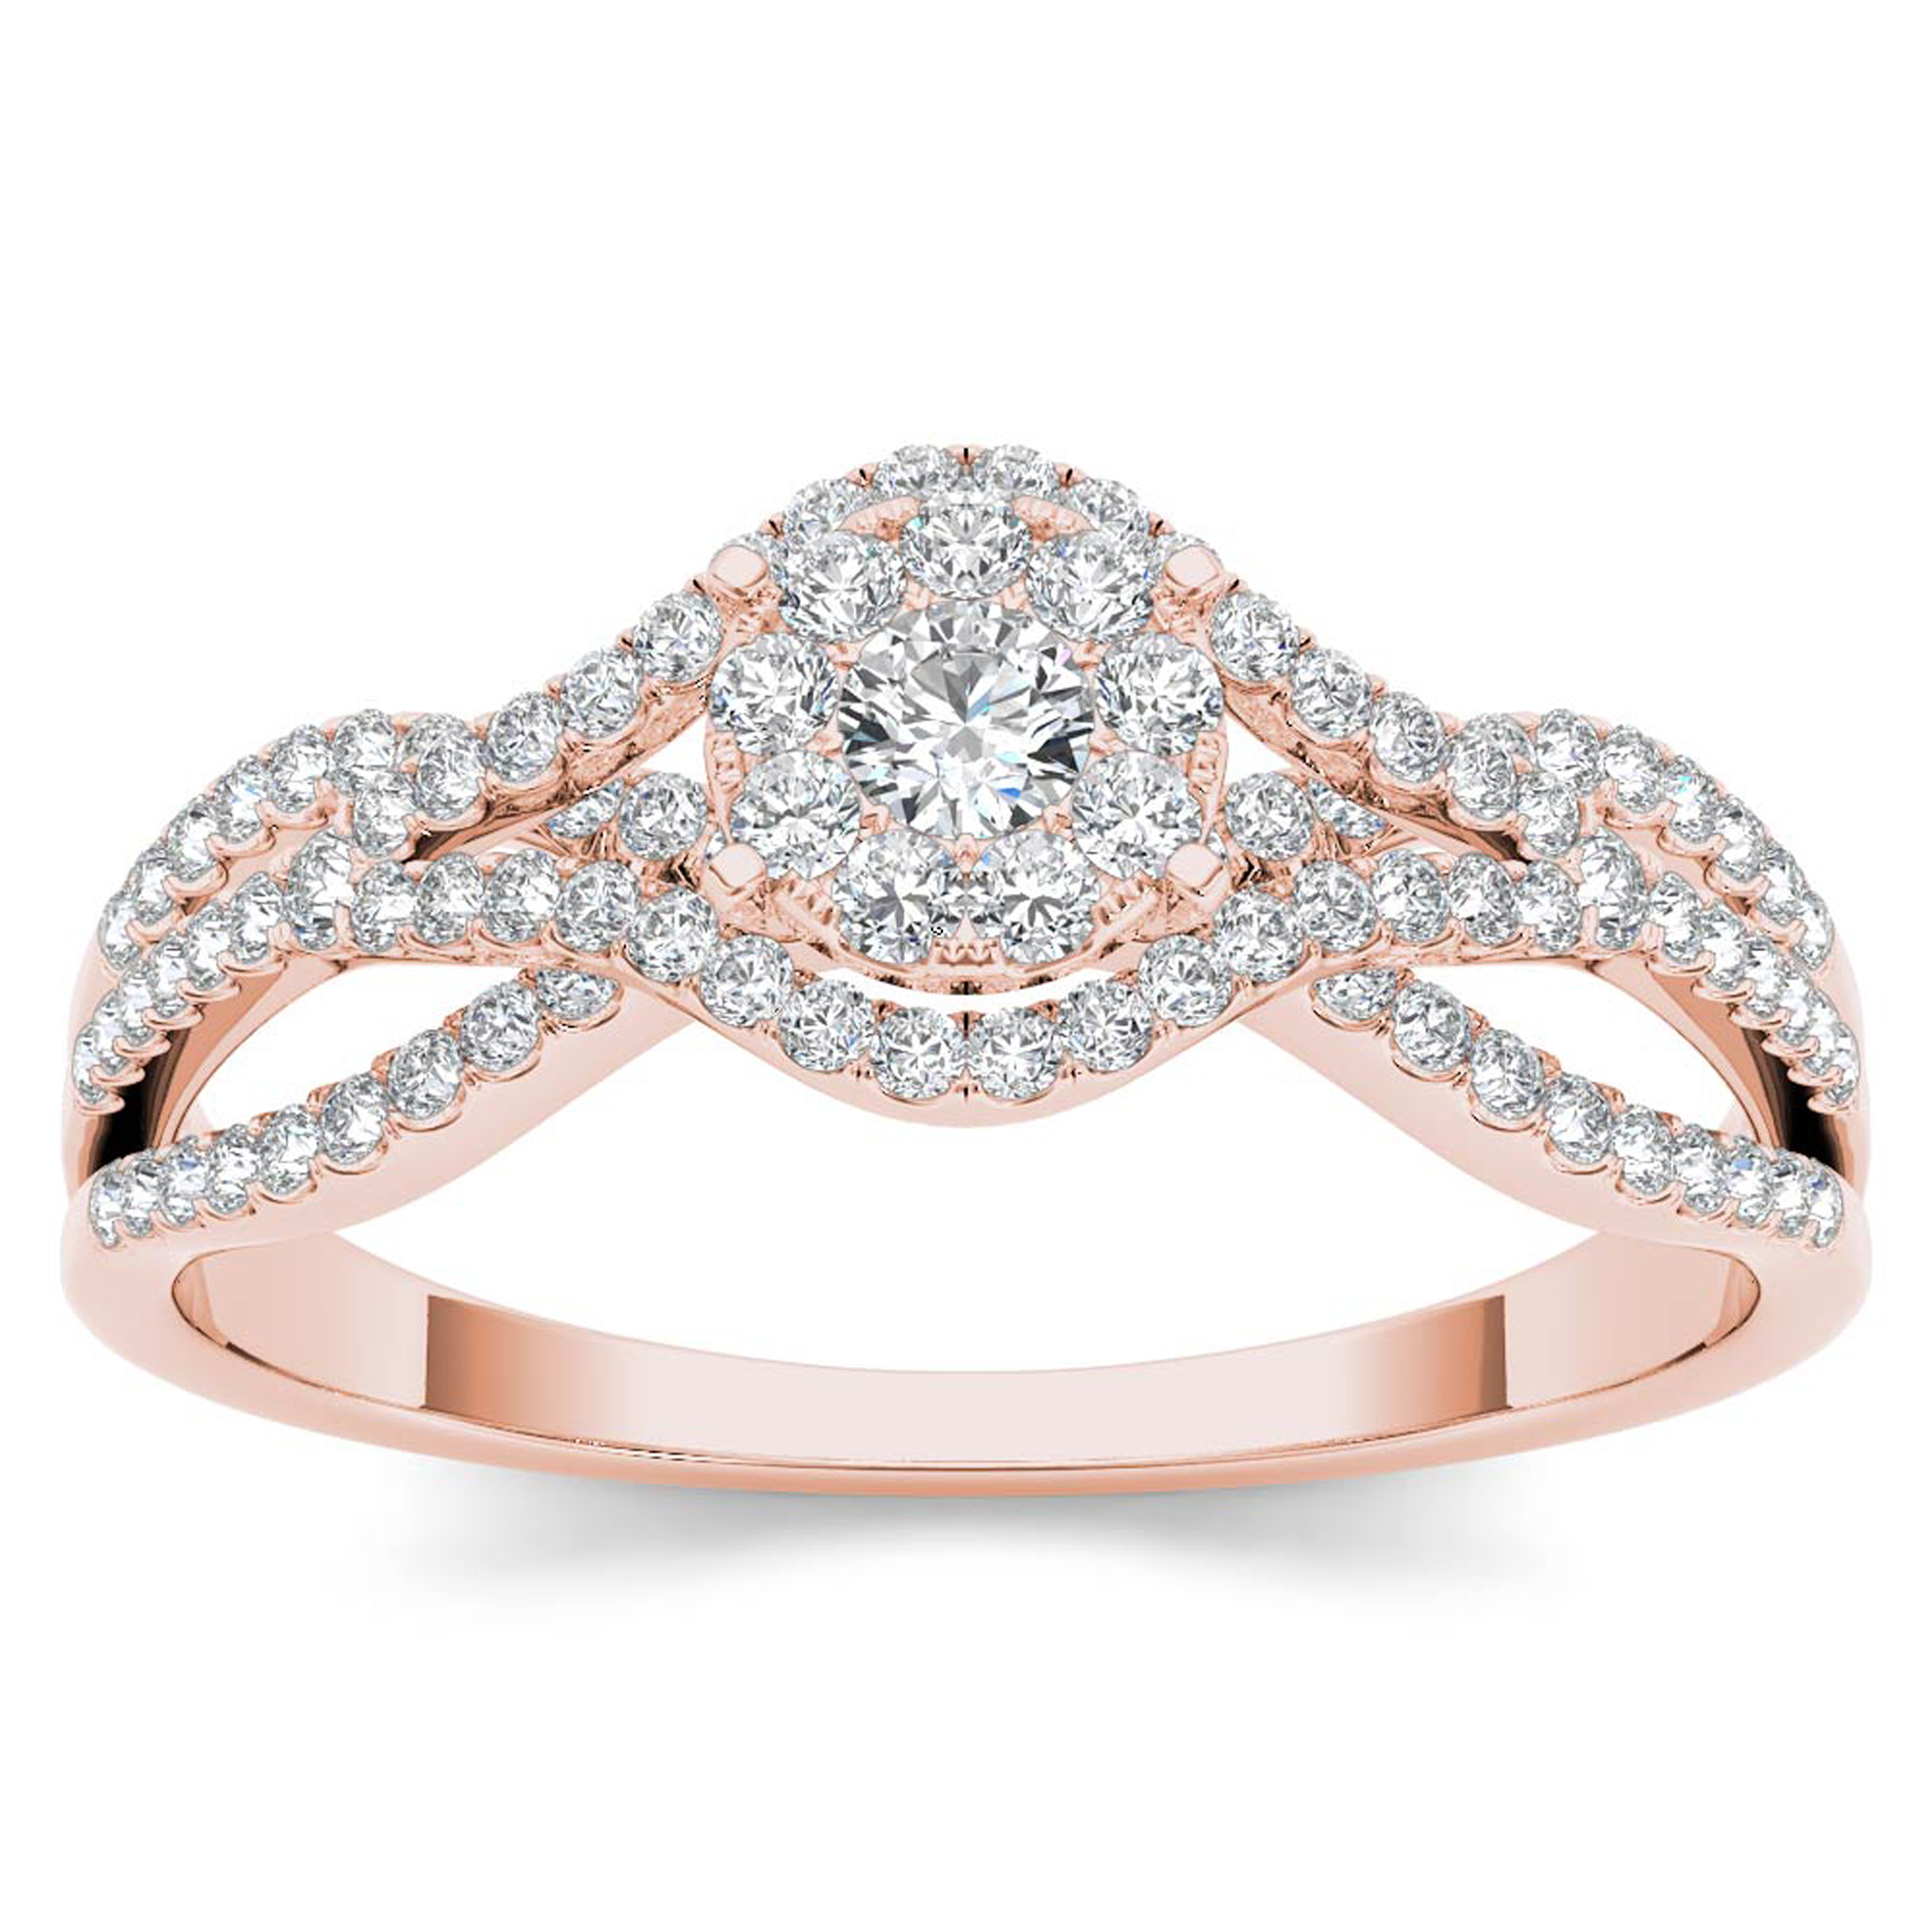 Imperial 1 2Ct TDW Diamond 10K Rose Gold Cluster Split Shank Engagement Ring by DE COUER NEW YORK LLC